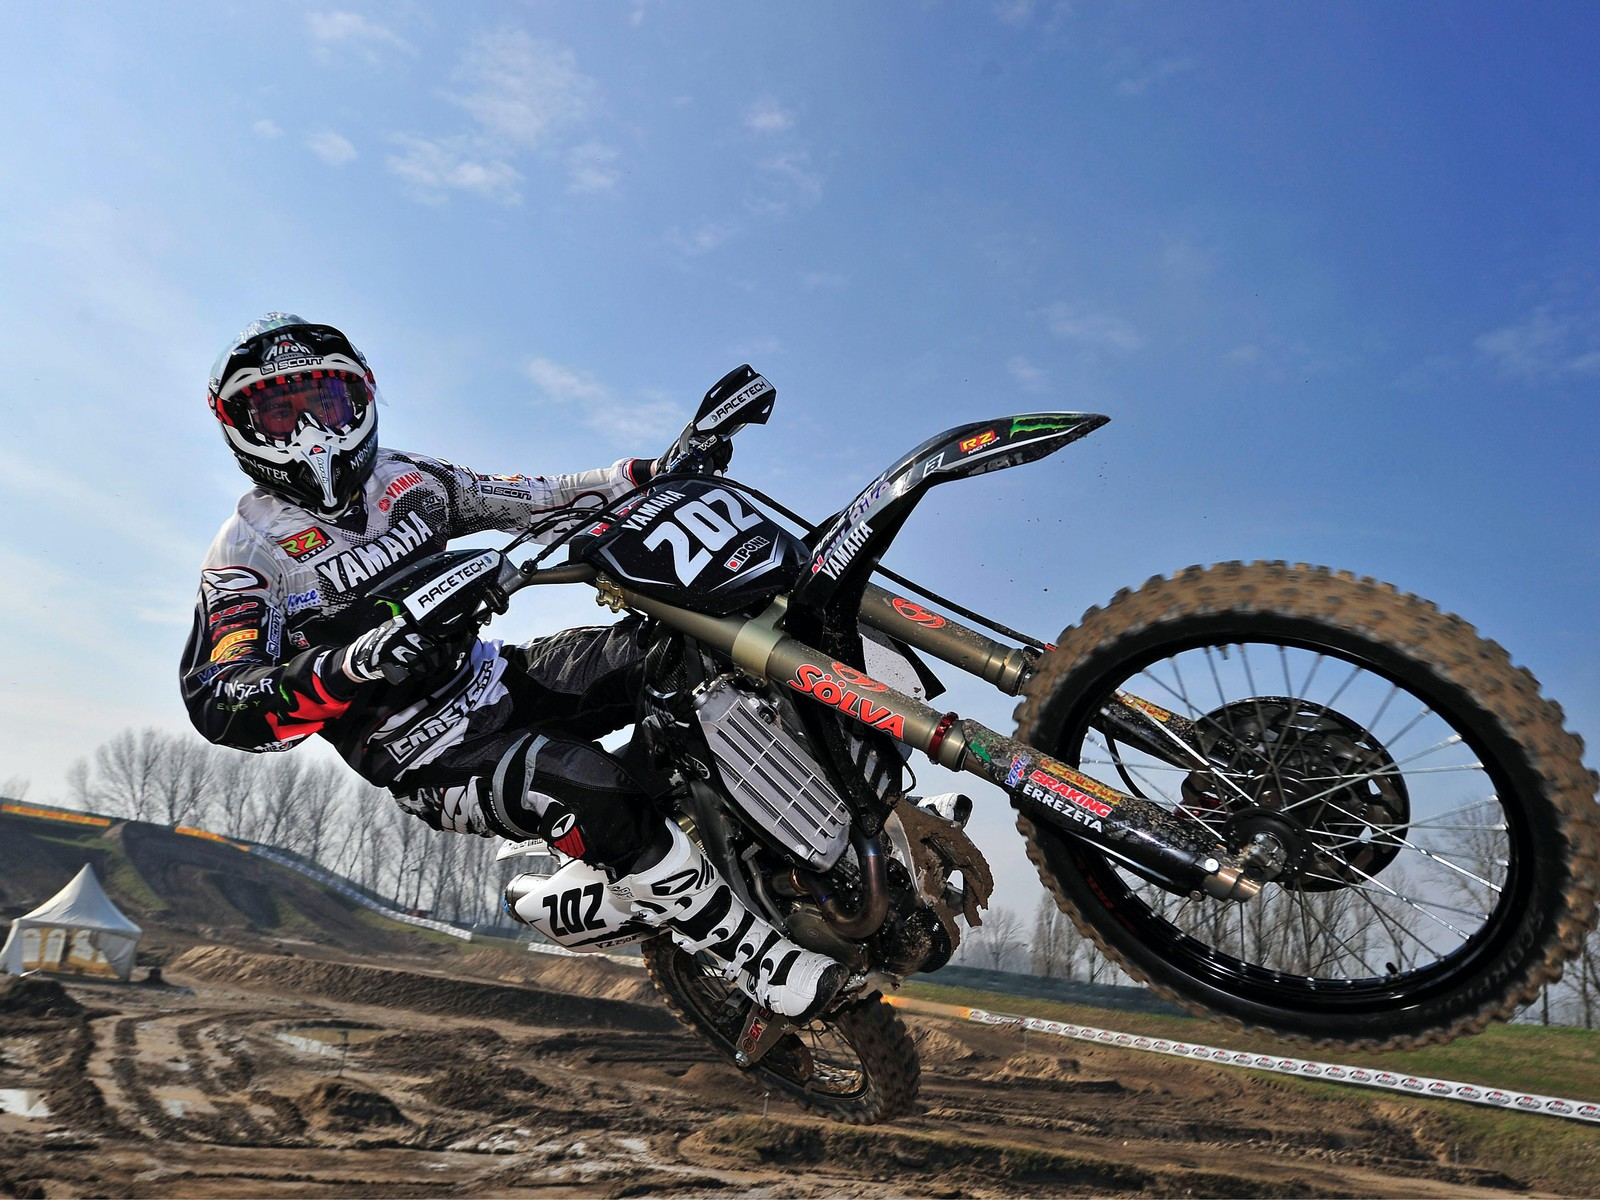 10 New Ktm Dirt Bike Wallpapers Full Hd 1080p For Pc: Yamaha Dirt Bikes Motocross Wallpaper